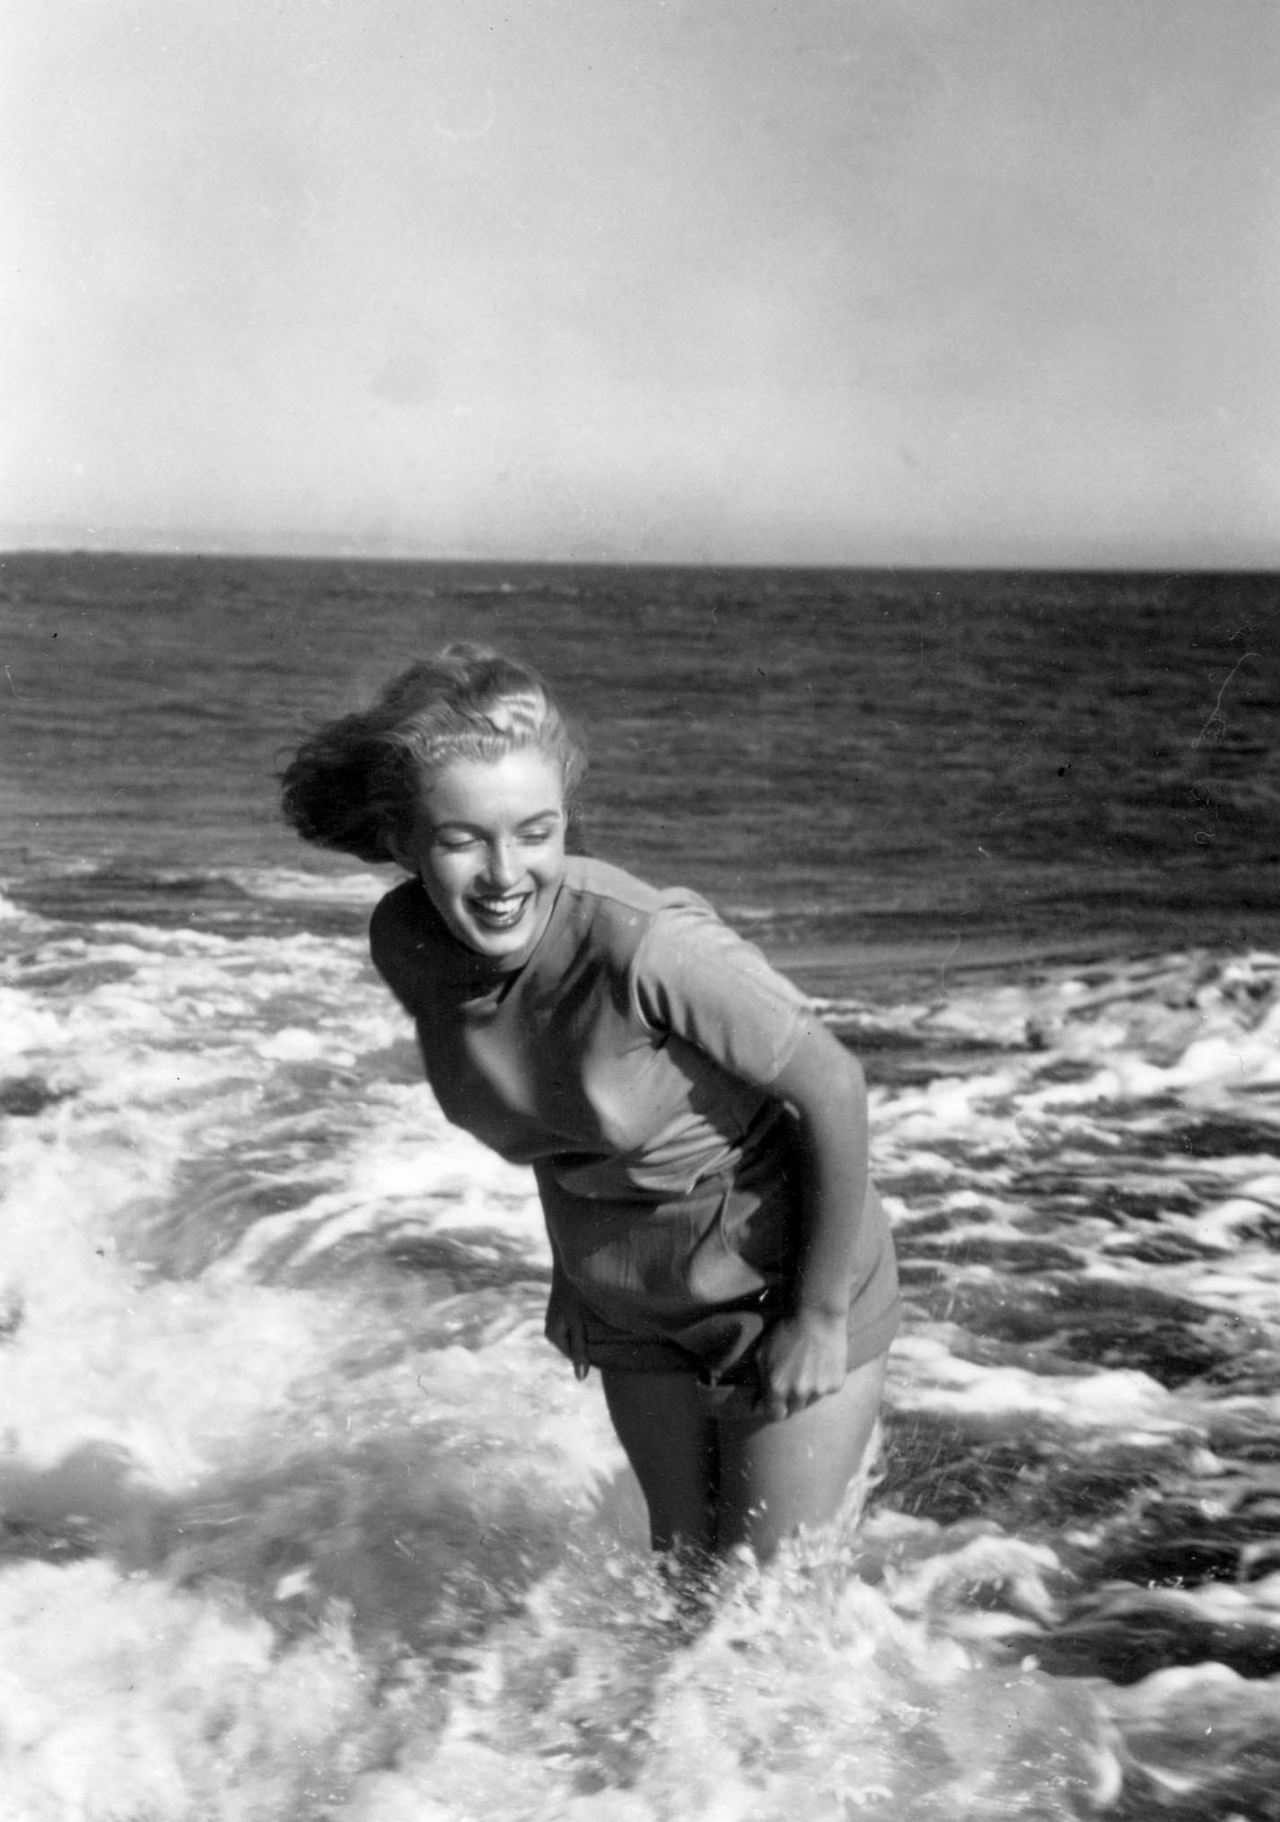 Marilyn photographed by Bill Burnside at Malibu Beach, 1948